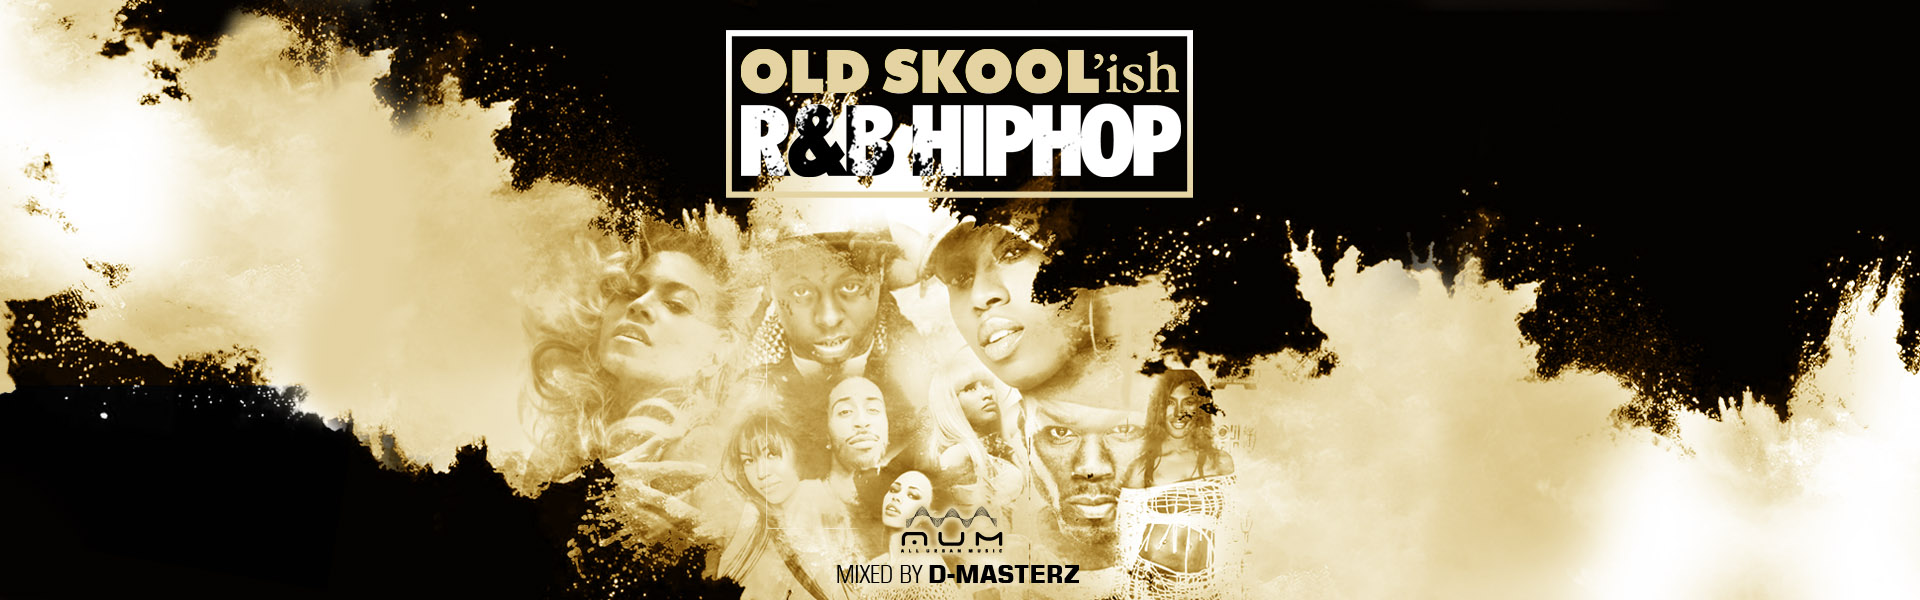 http://www.allurbanmusic.com/wp-content/uploads/2018/02/banner_all_urban_music_old_skool_ish_rnb_hip_hop_d_masterz.jpg